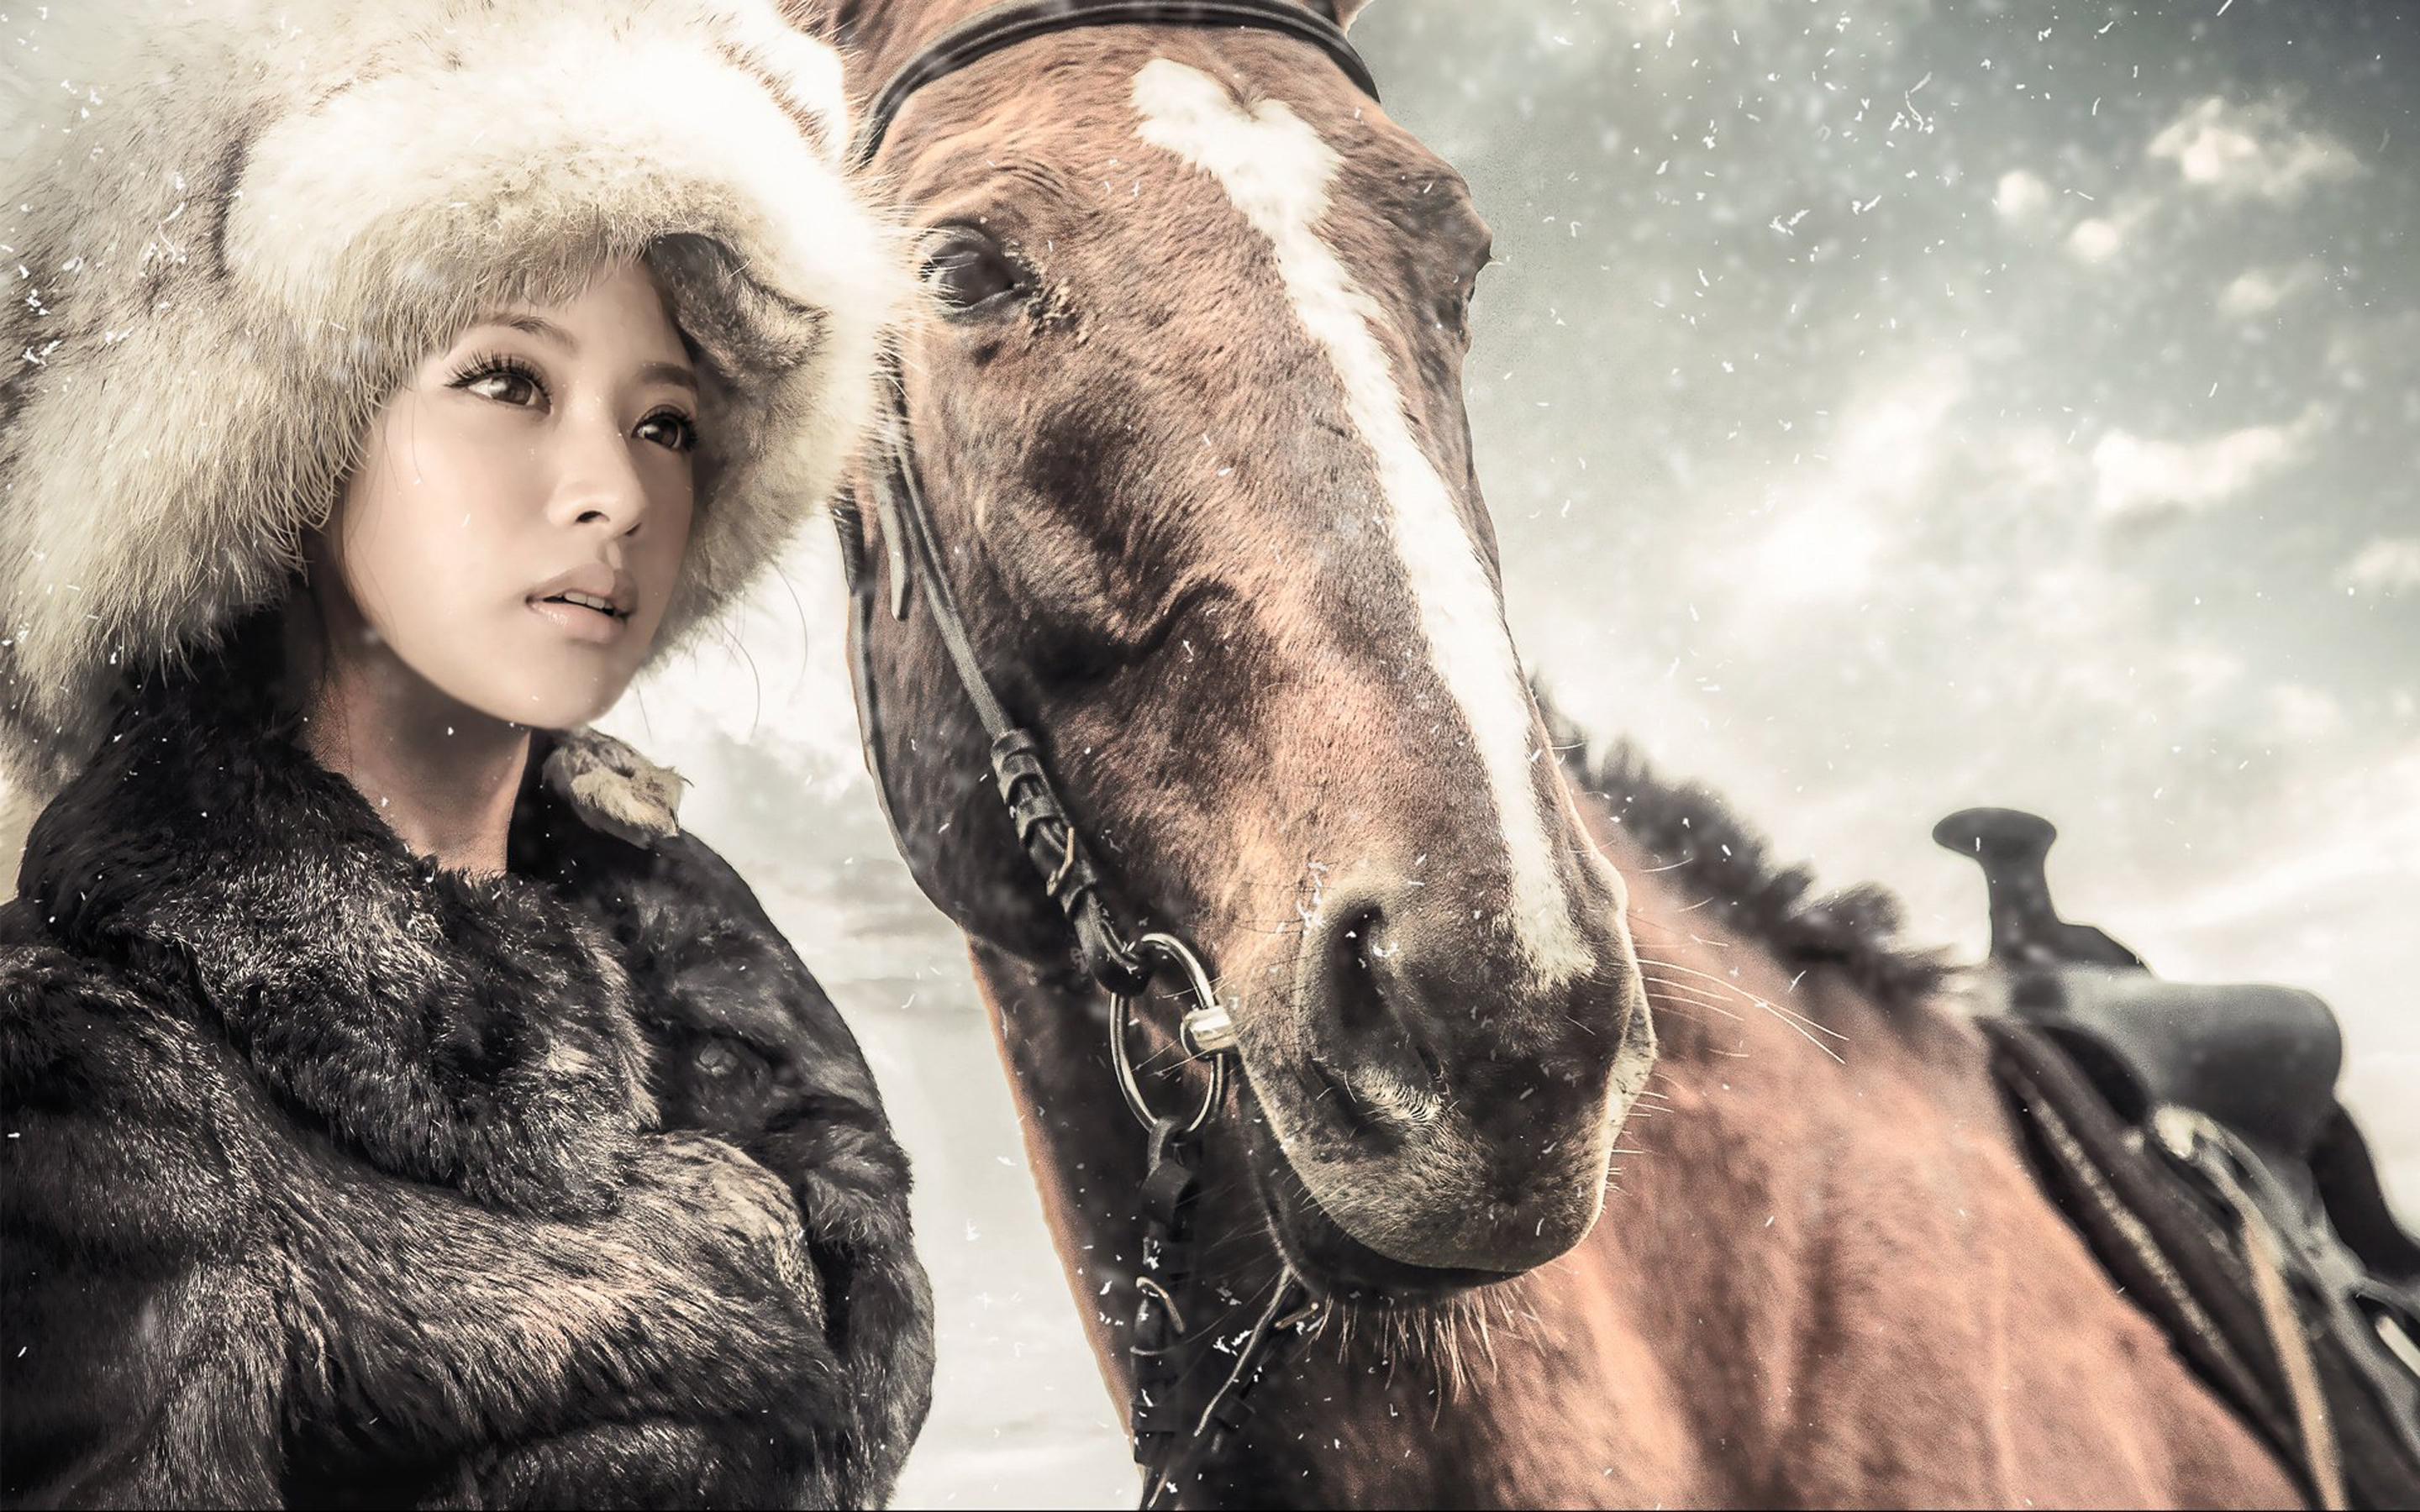 Android World Beautiful Girl Wallpapers Girl And Horse Winter Snow Coat And Hat Of Fur Full Hd